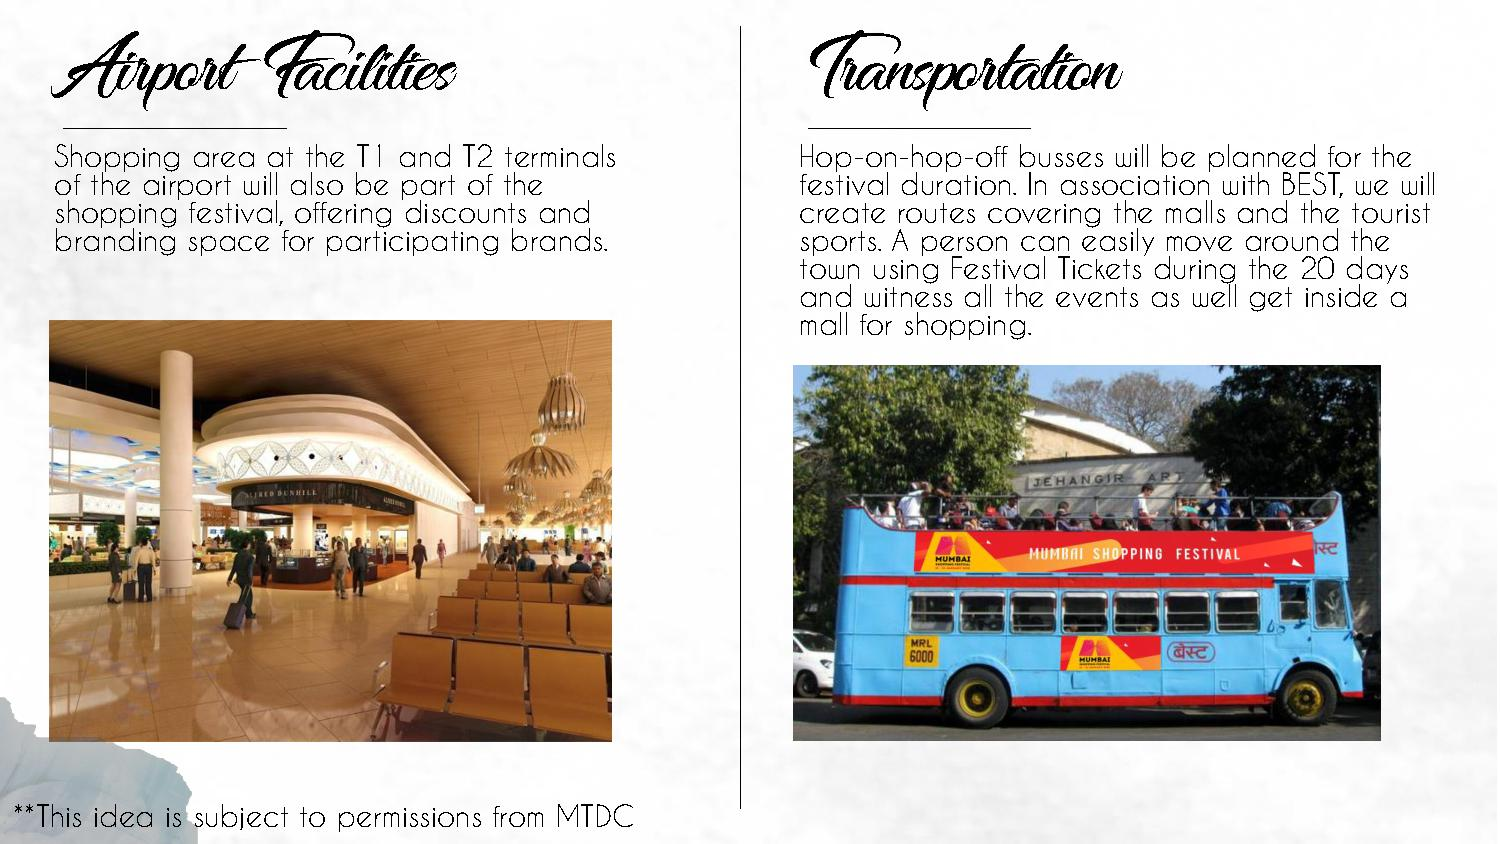 Airport Facilities Shopping area at the T1 and T2 terminals of the airport will also be part of the shopping festival, offering discounts and branding space for participating brands. Transportation Hop-on-hop-off busses will be planned for the festival duration. In association with BEST, we will create routes covering the malls and the tourist sports. A person can easily move around the town using Festival Tickets during the 20 days and witness all the events as well get inside a mall for shopping.